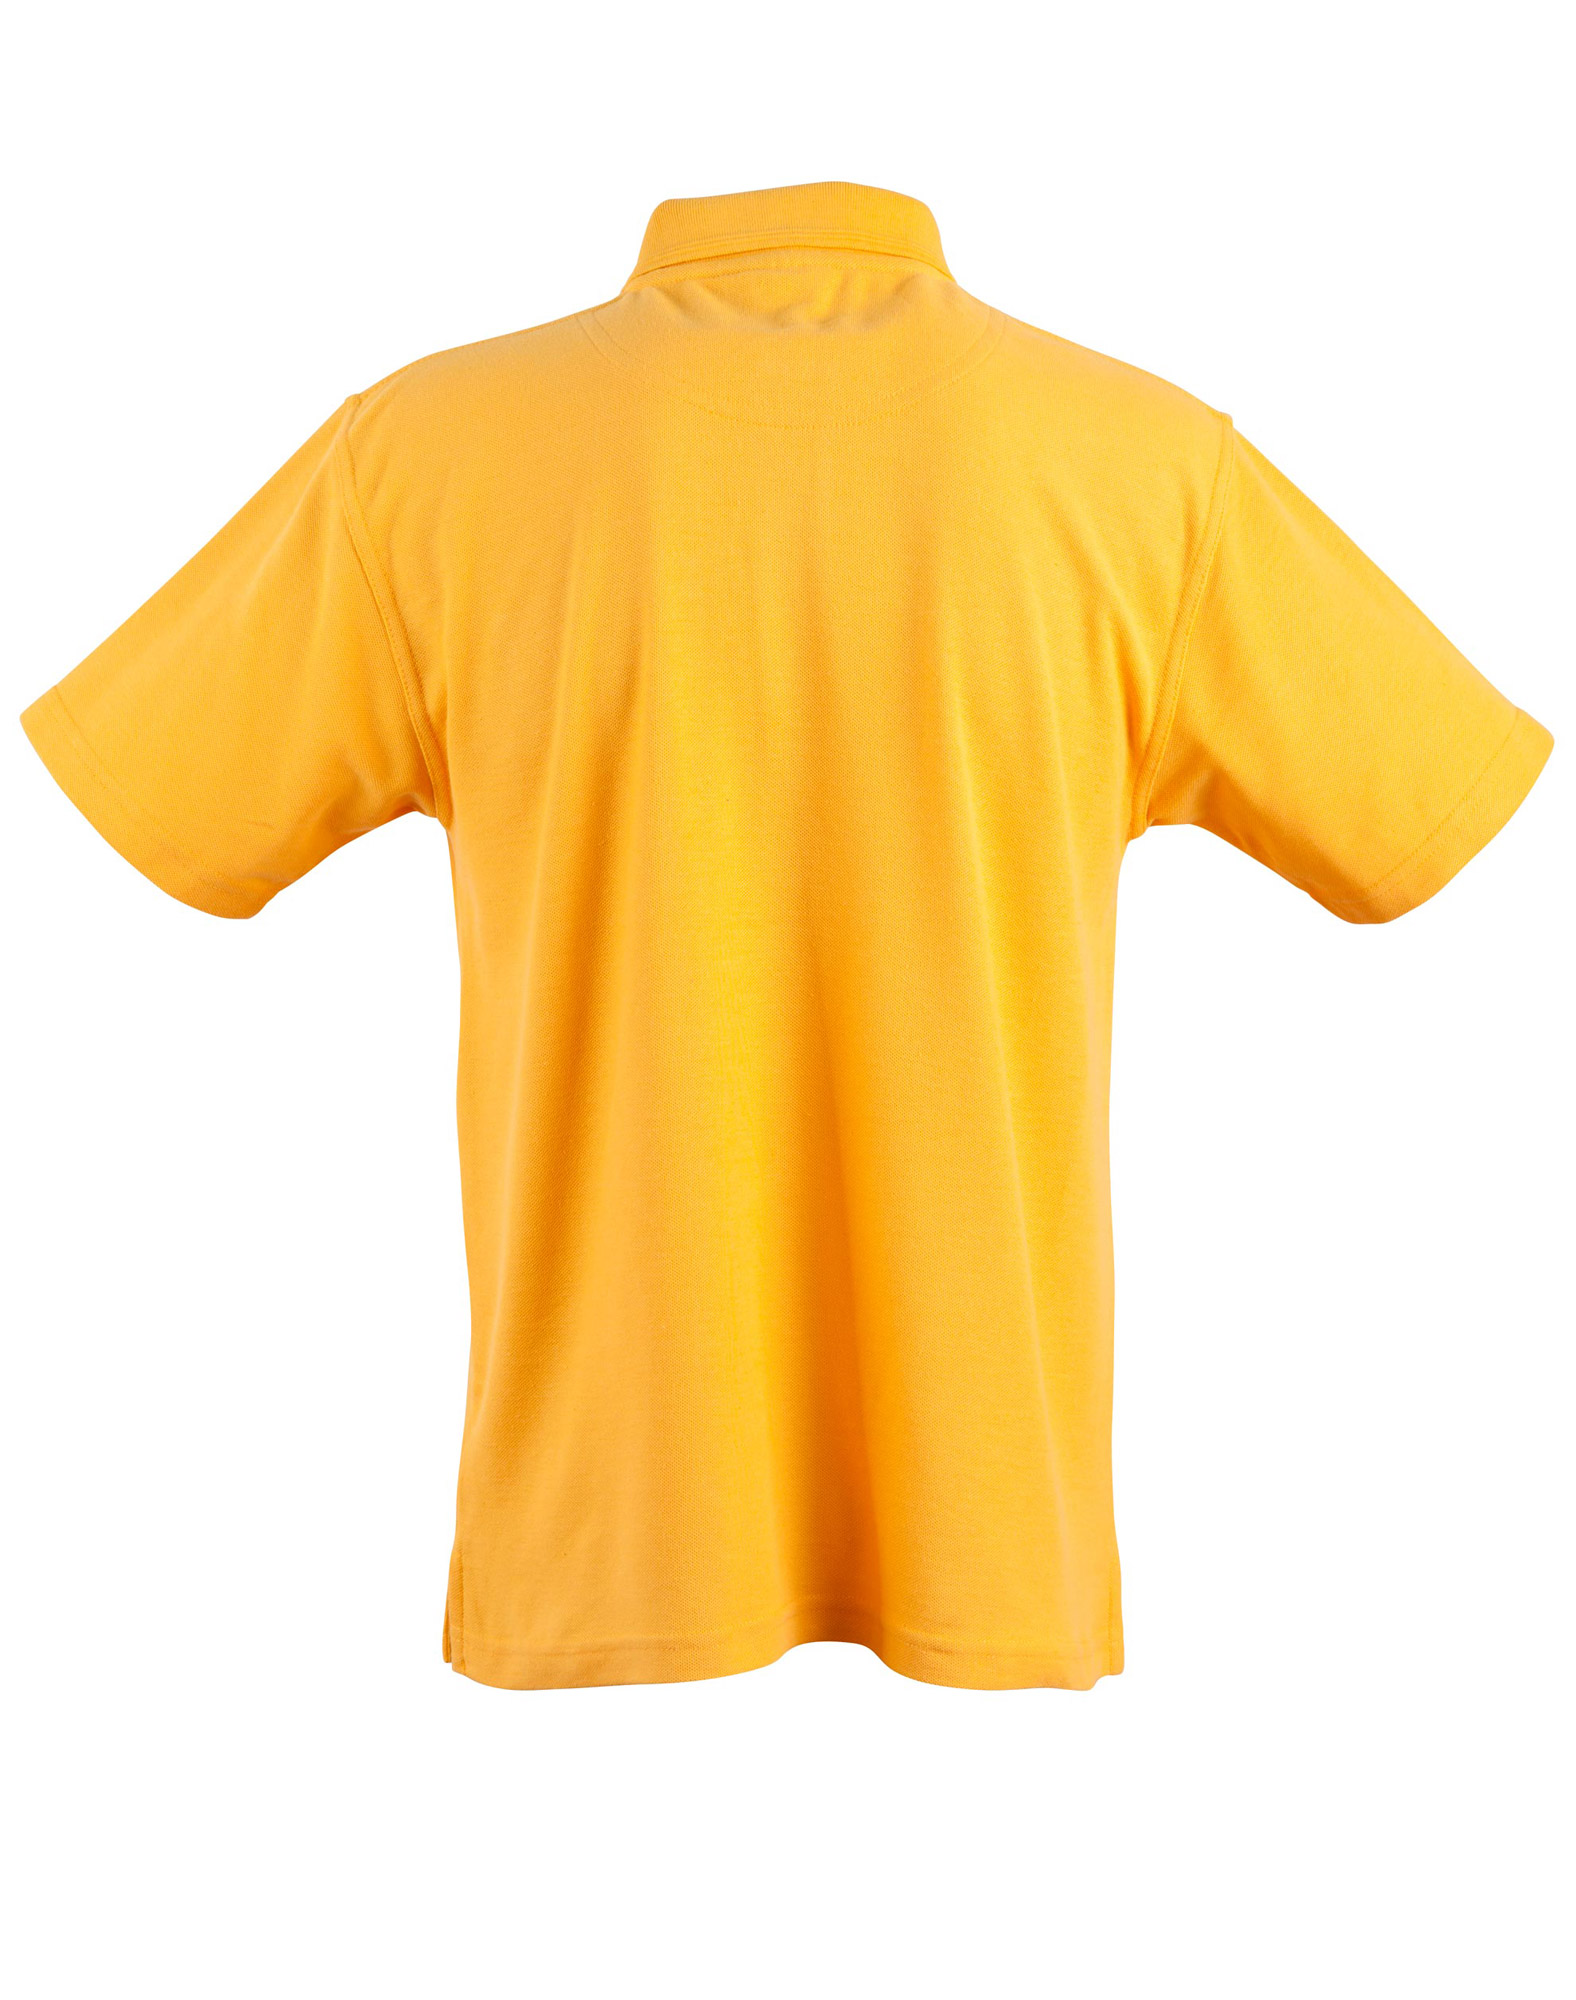 https://s3-ap-southeast-1.amazonaws.com/ws-imgs/POLOSHIRTS/PS41_Gold_Back_l.jpg